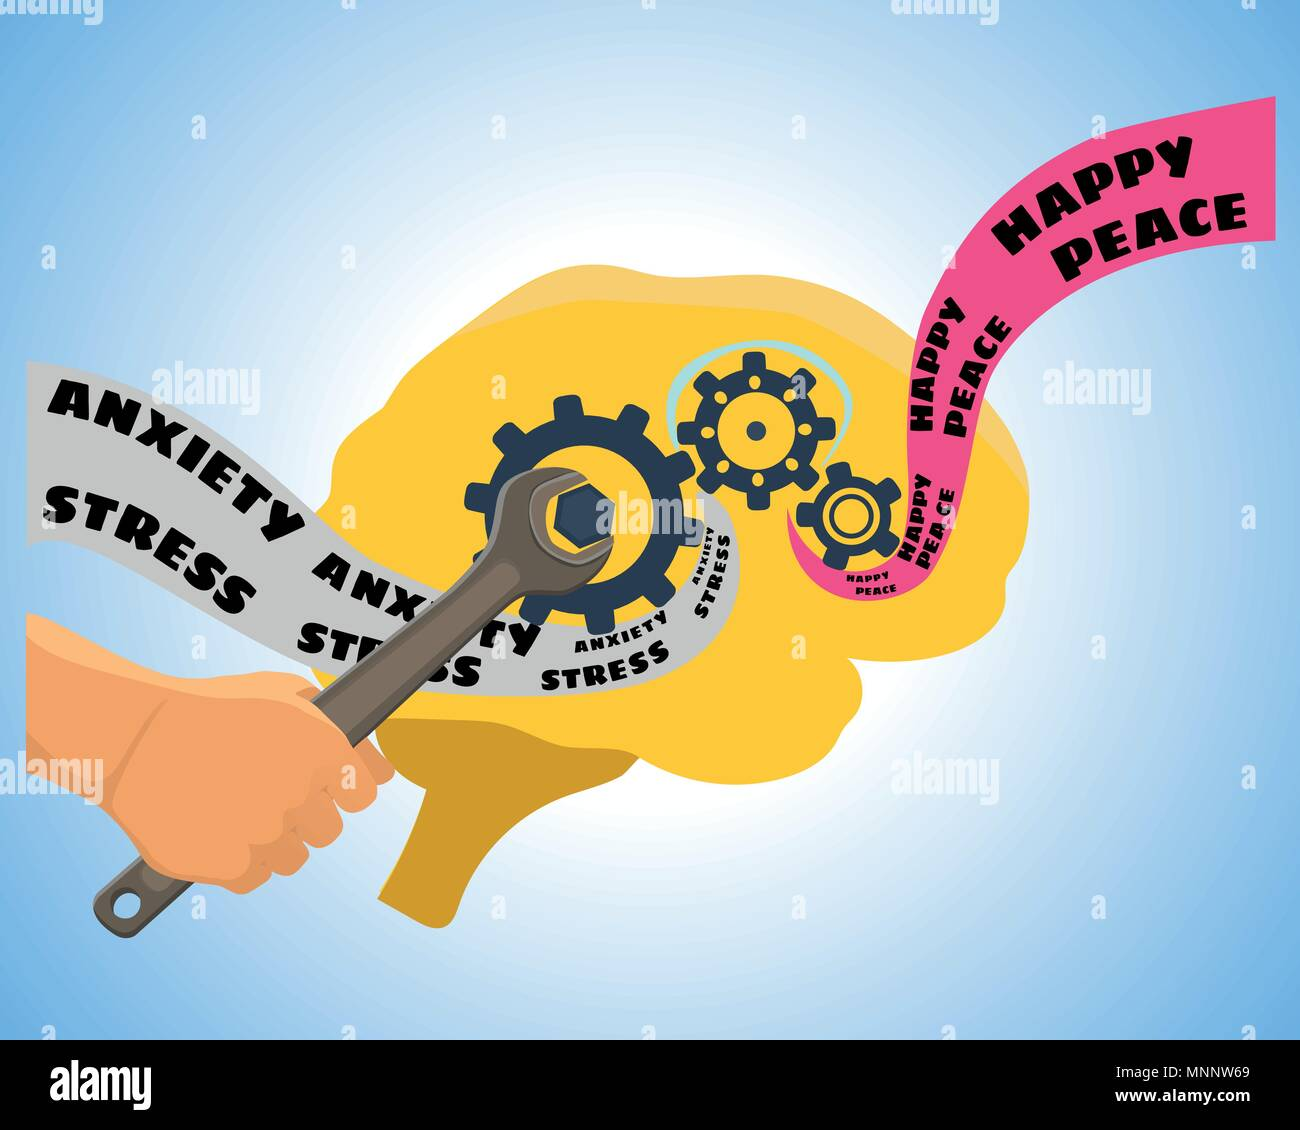 Brain training vector illustration. Mental psychology problem, health and psychiatrist, human mind, medical stress, depression and therapy illustratio - Stock Image